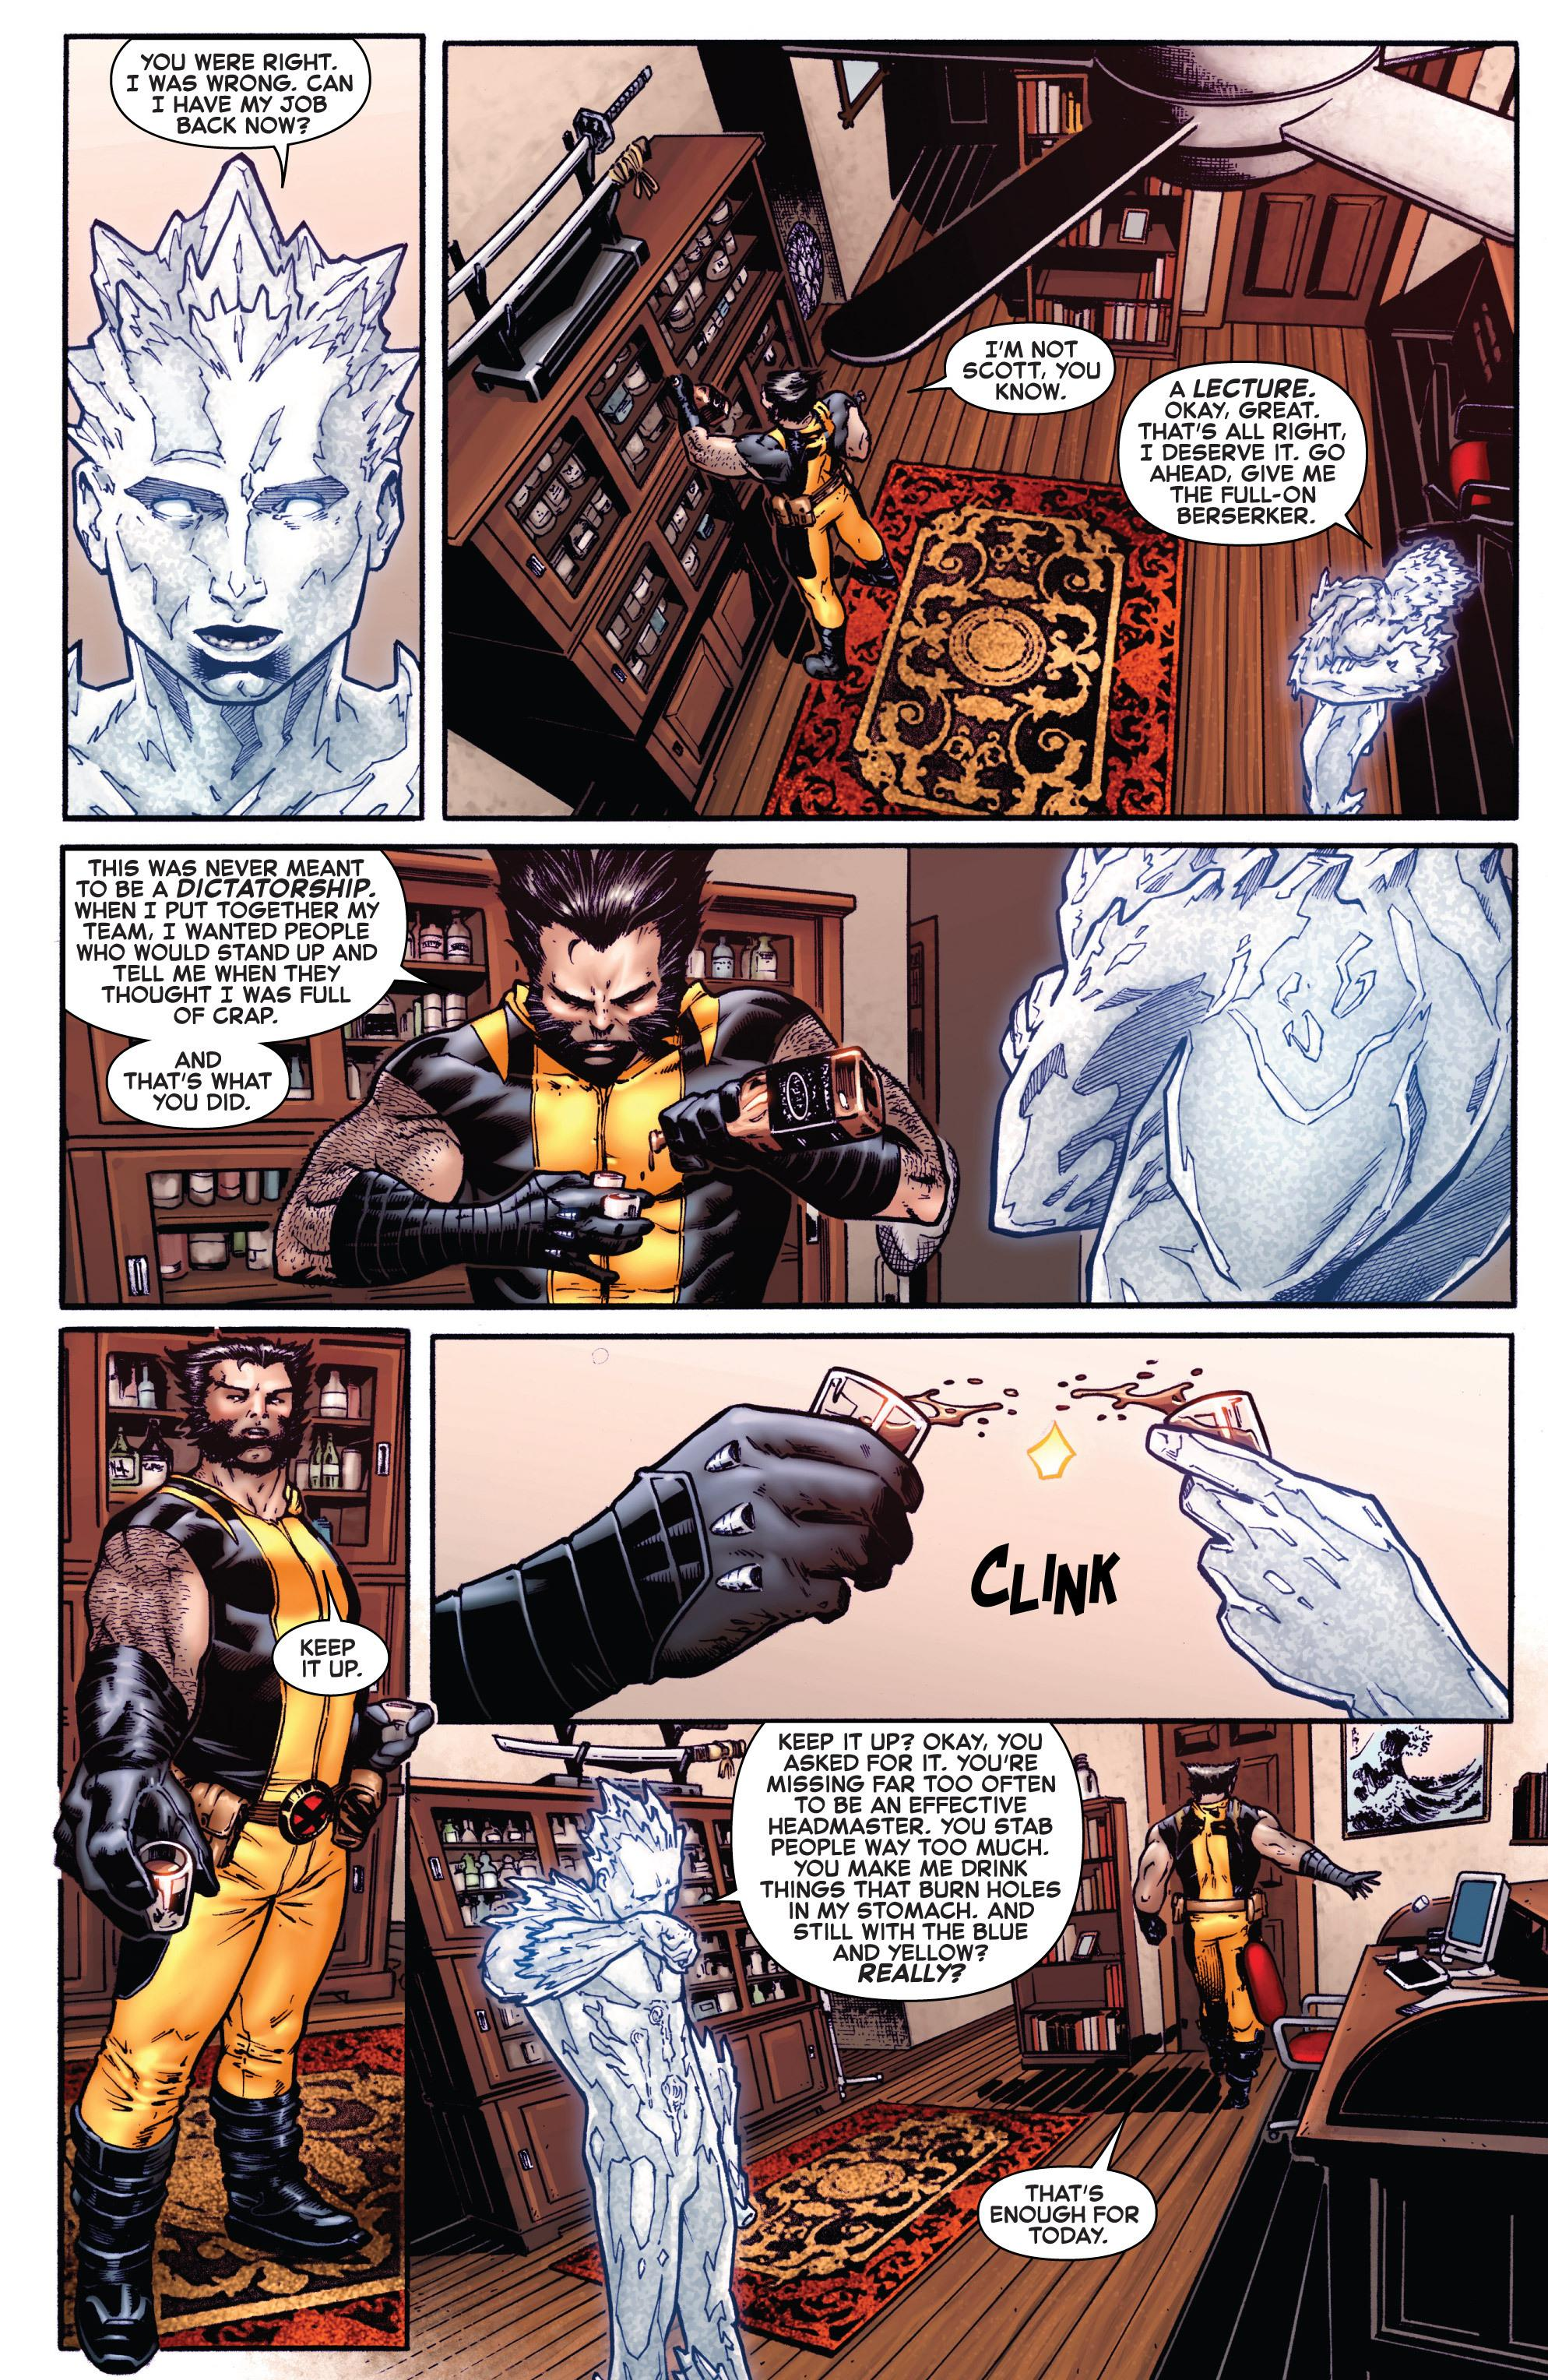 Wolverine and the X-Men v 4 review